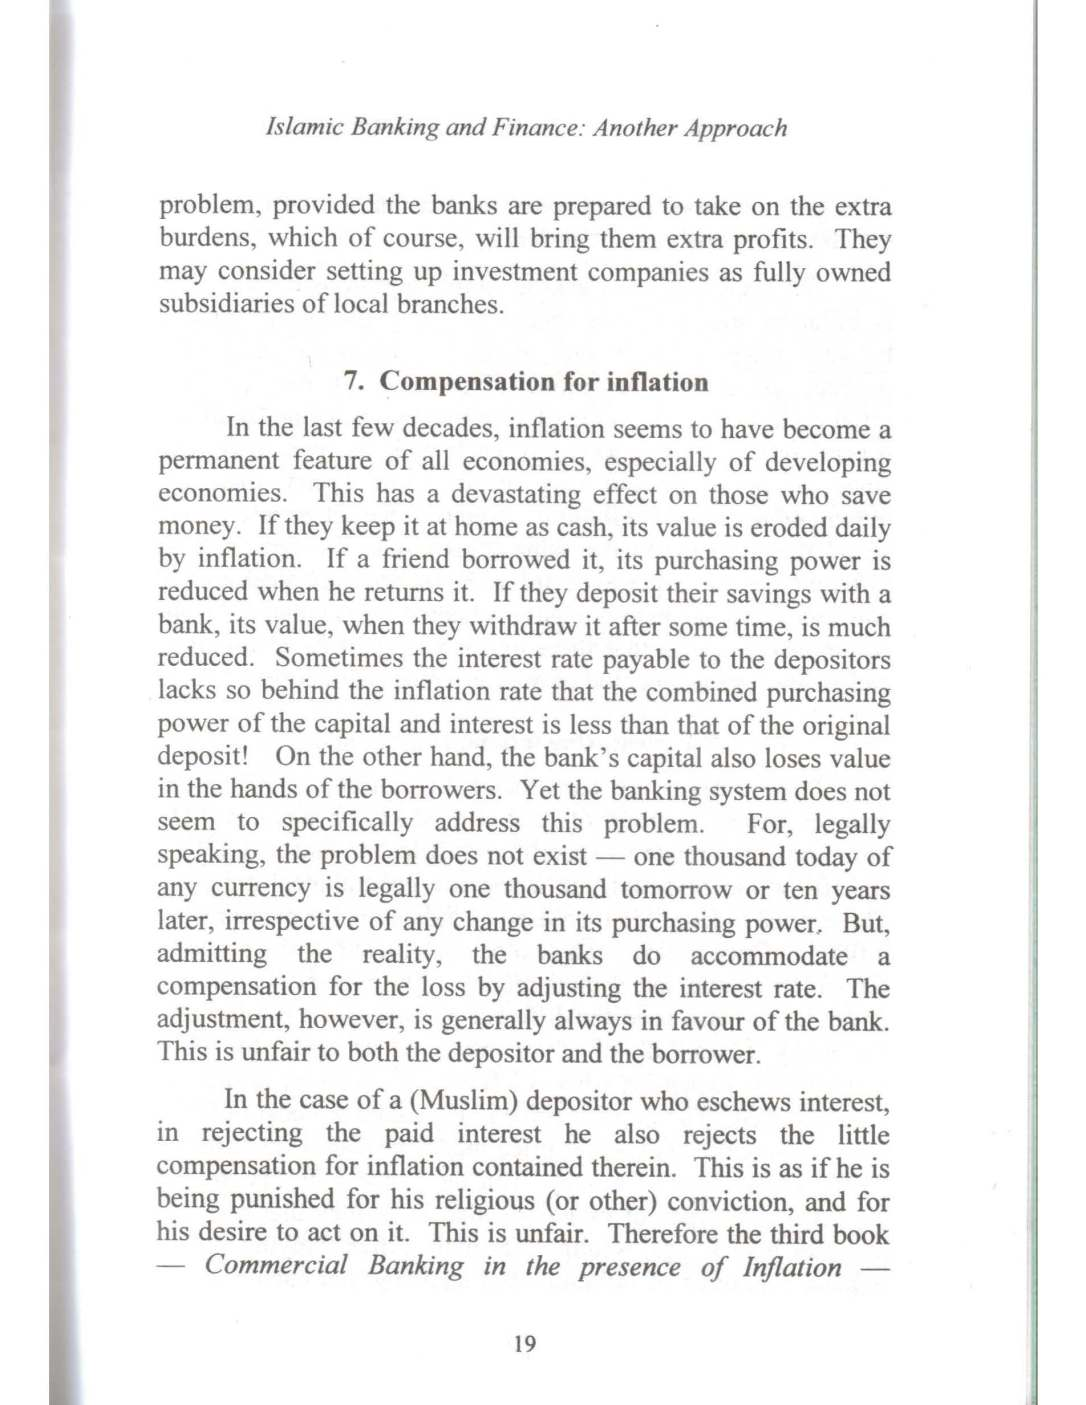 Islamic Banking and Finance - Another Approach_Page_20